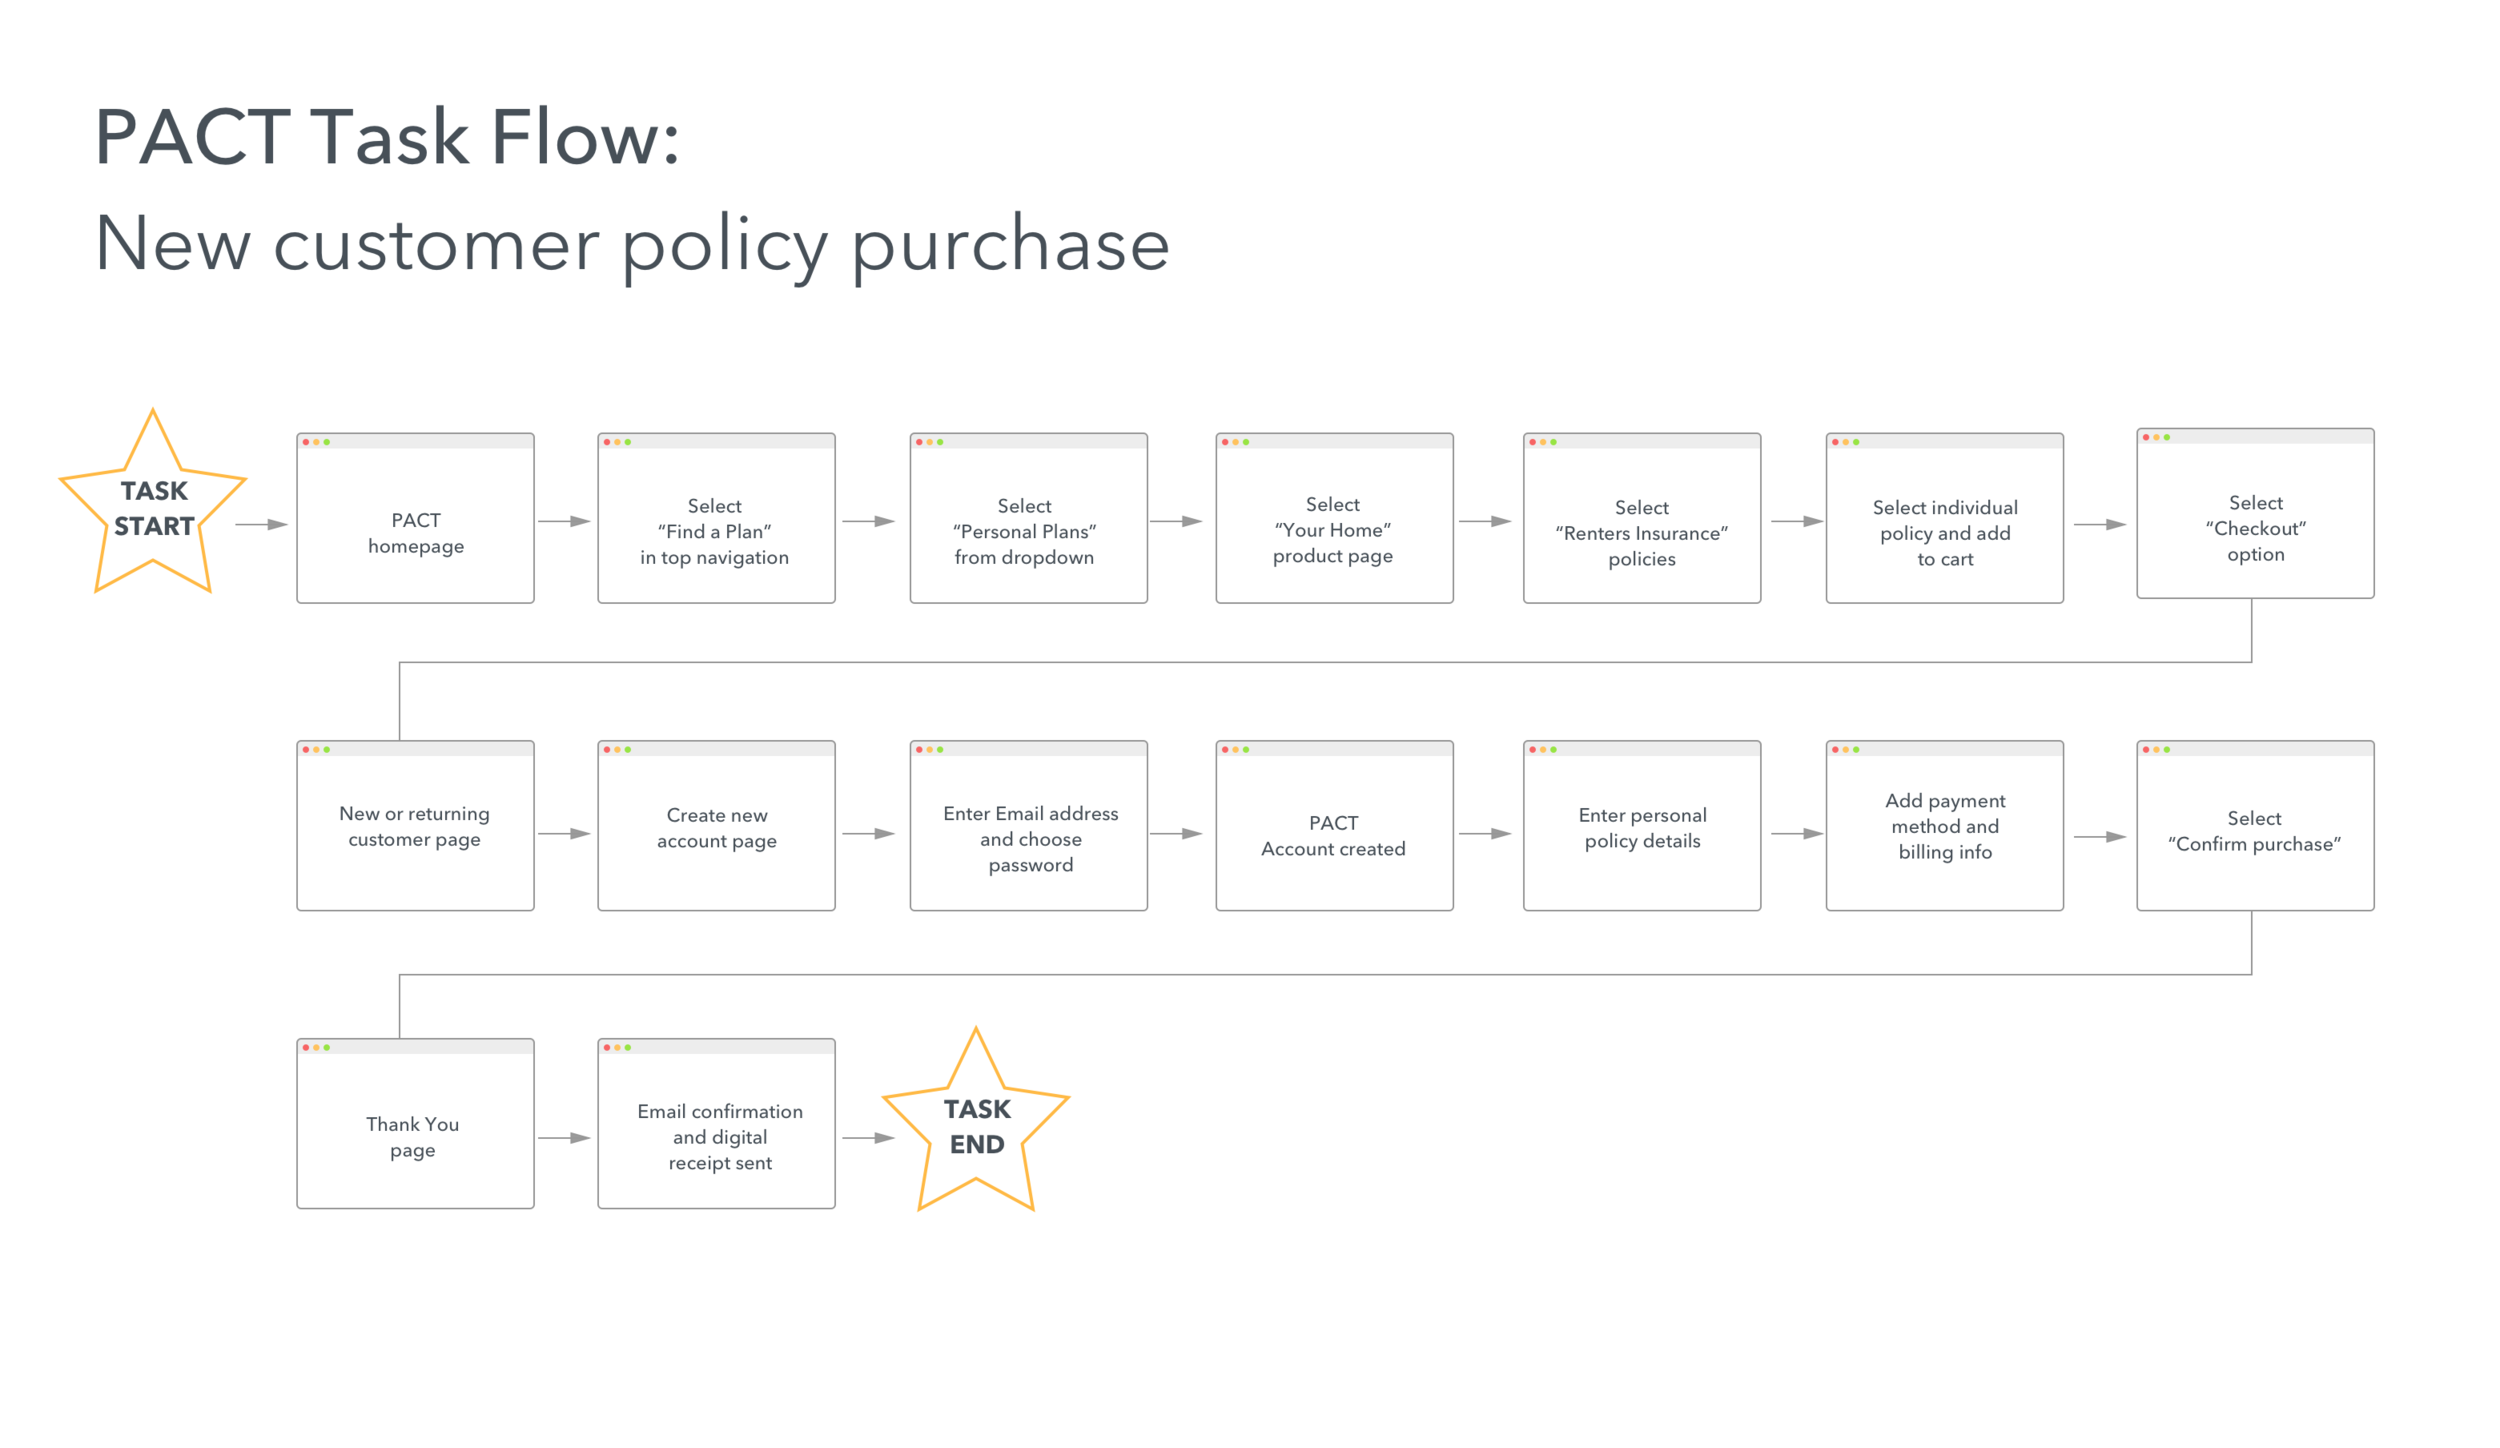 Primary Task Flow for the PACT website